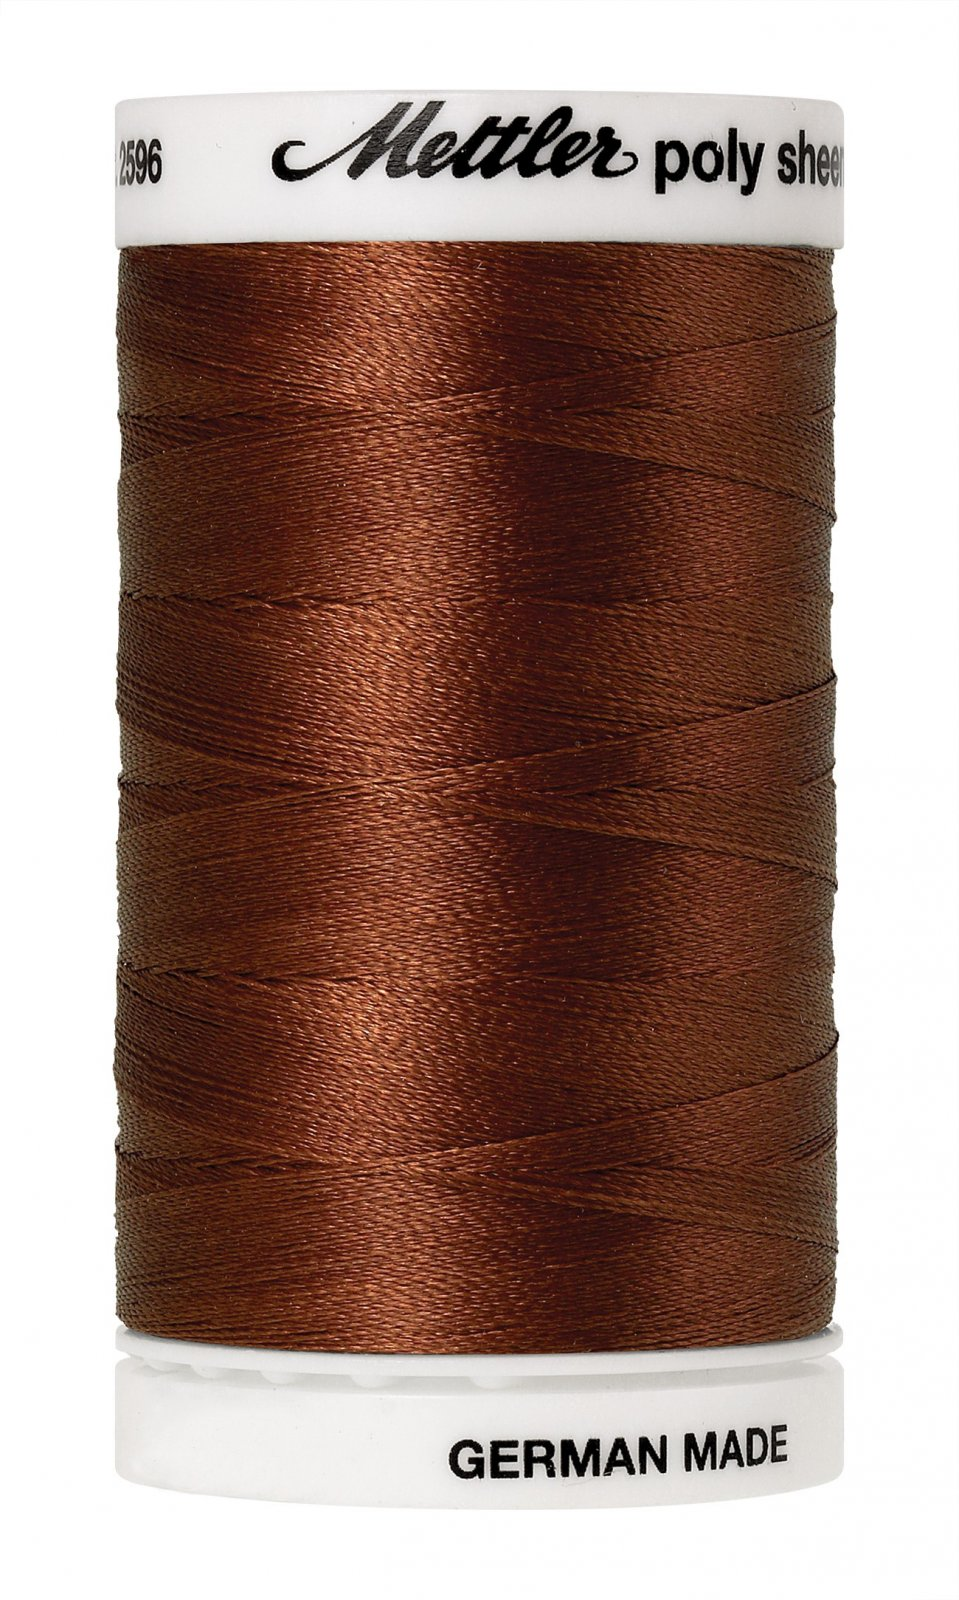 Poly Sheen Polyester Embroidery Thread 40wt 140d 800m/875yds Rust